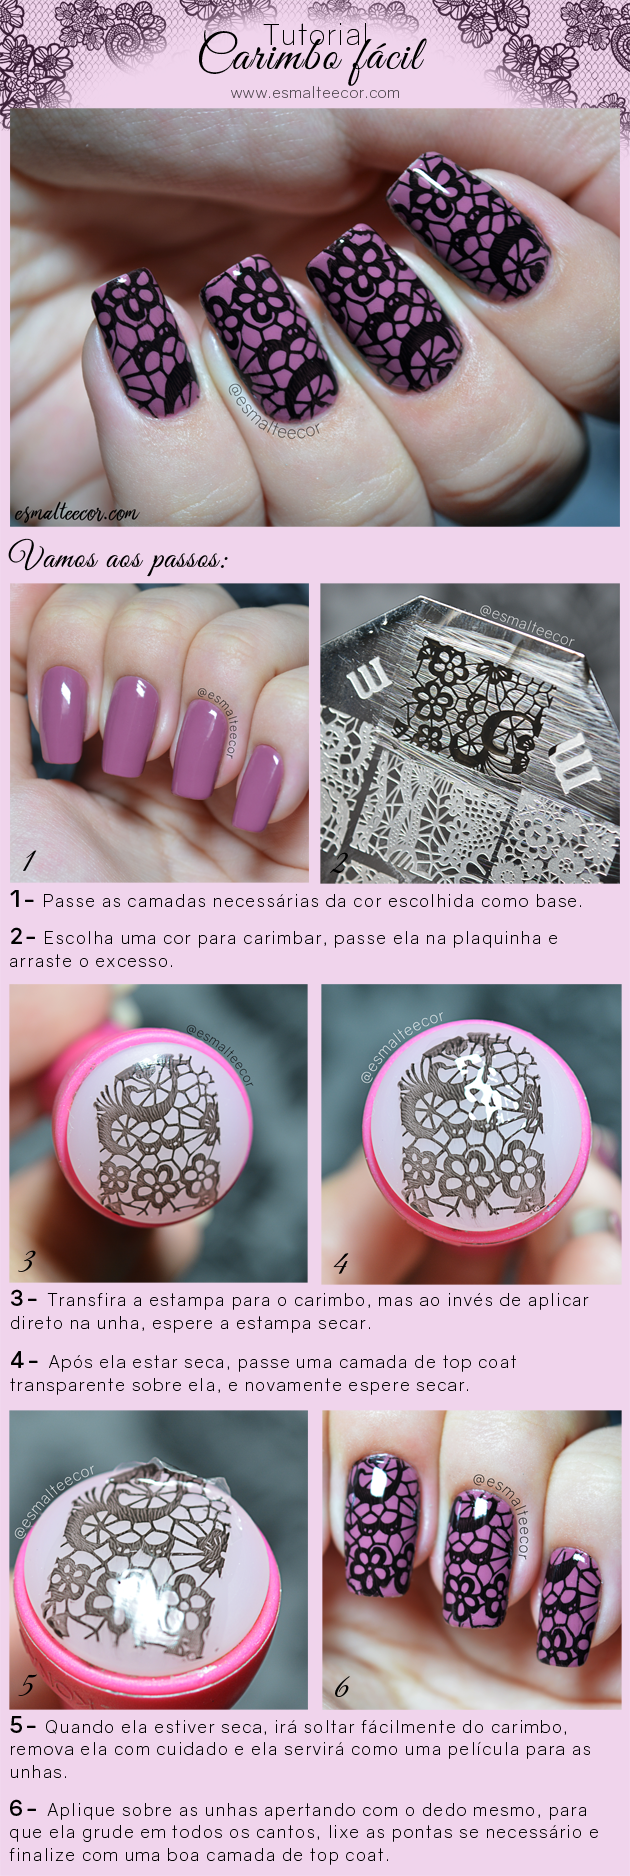 tutorial nail art carimbo